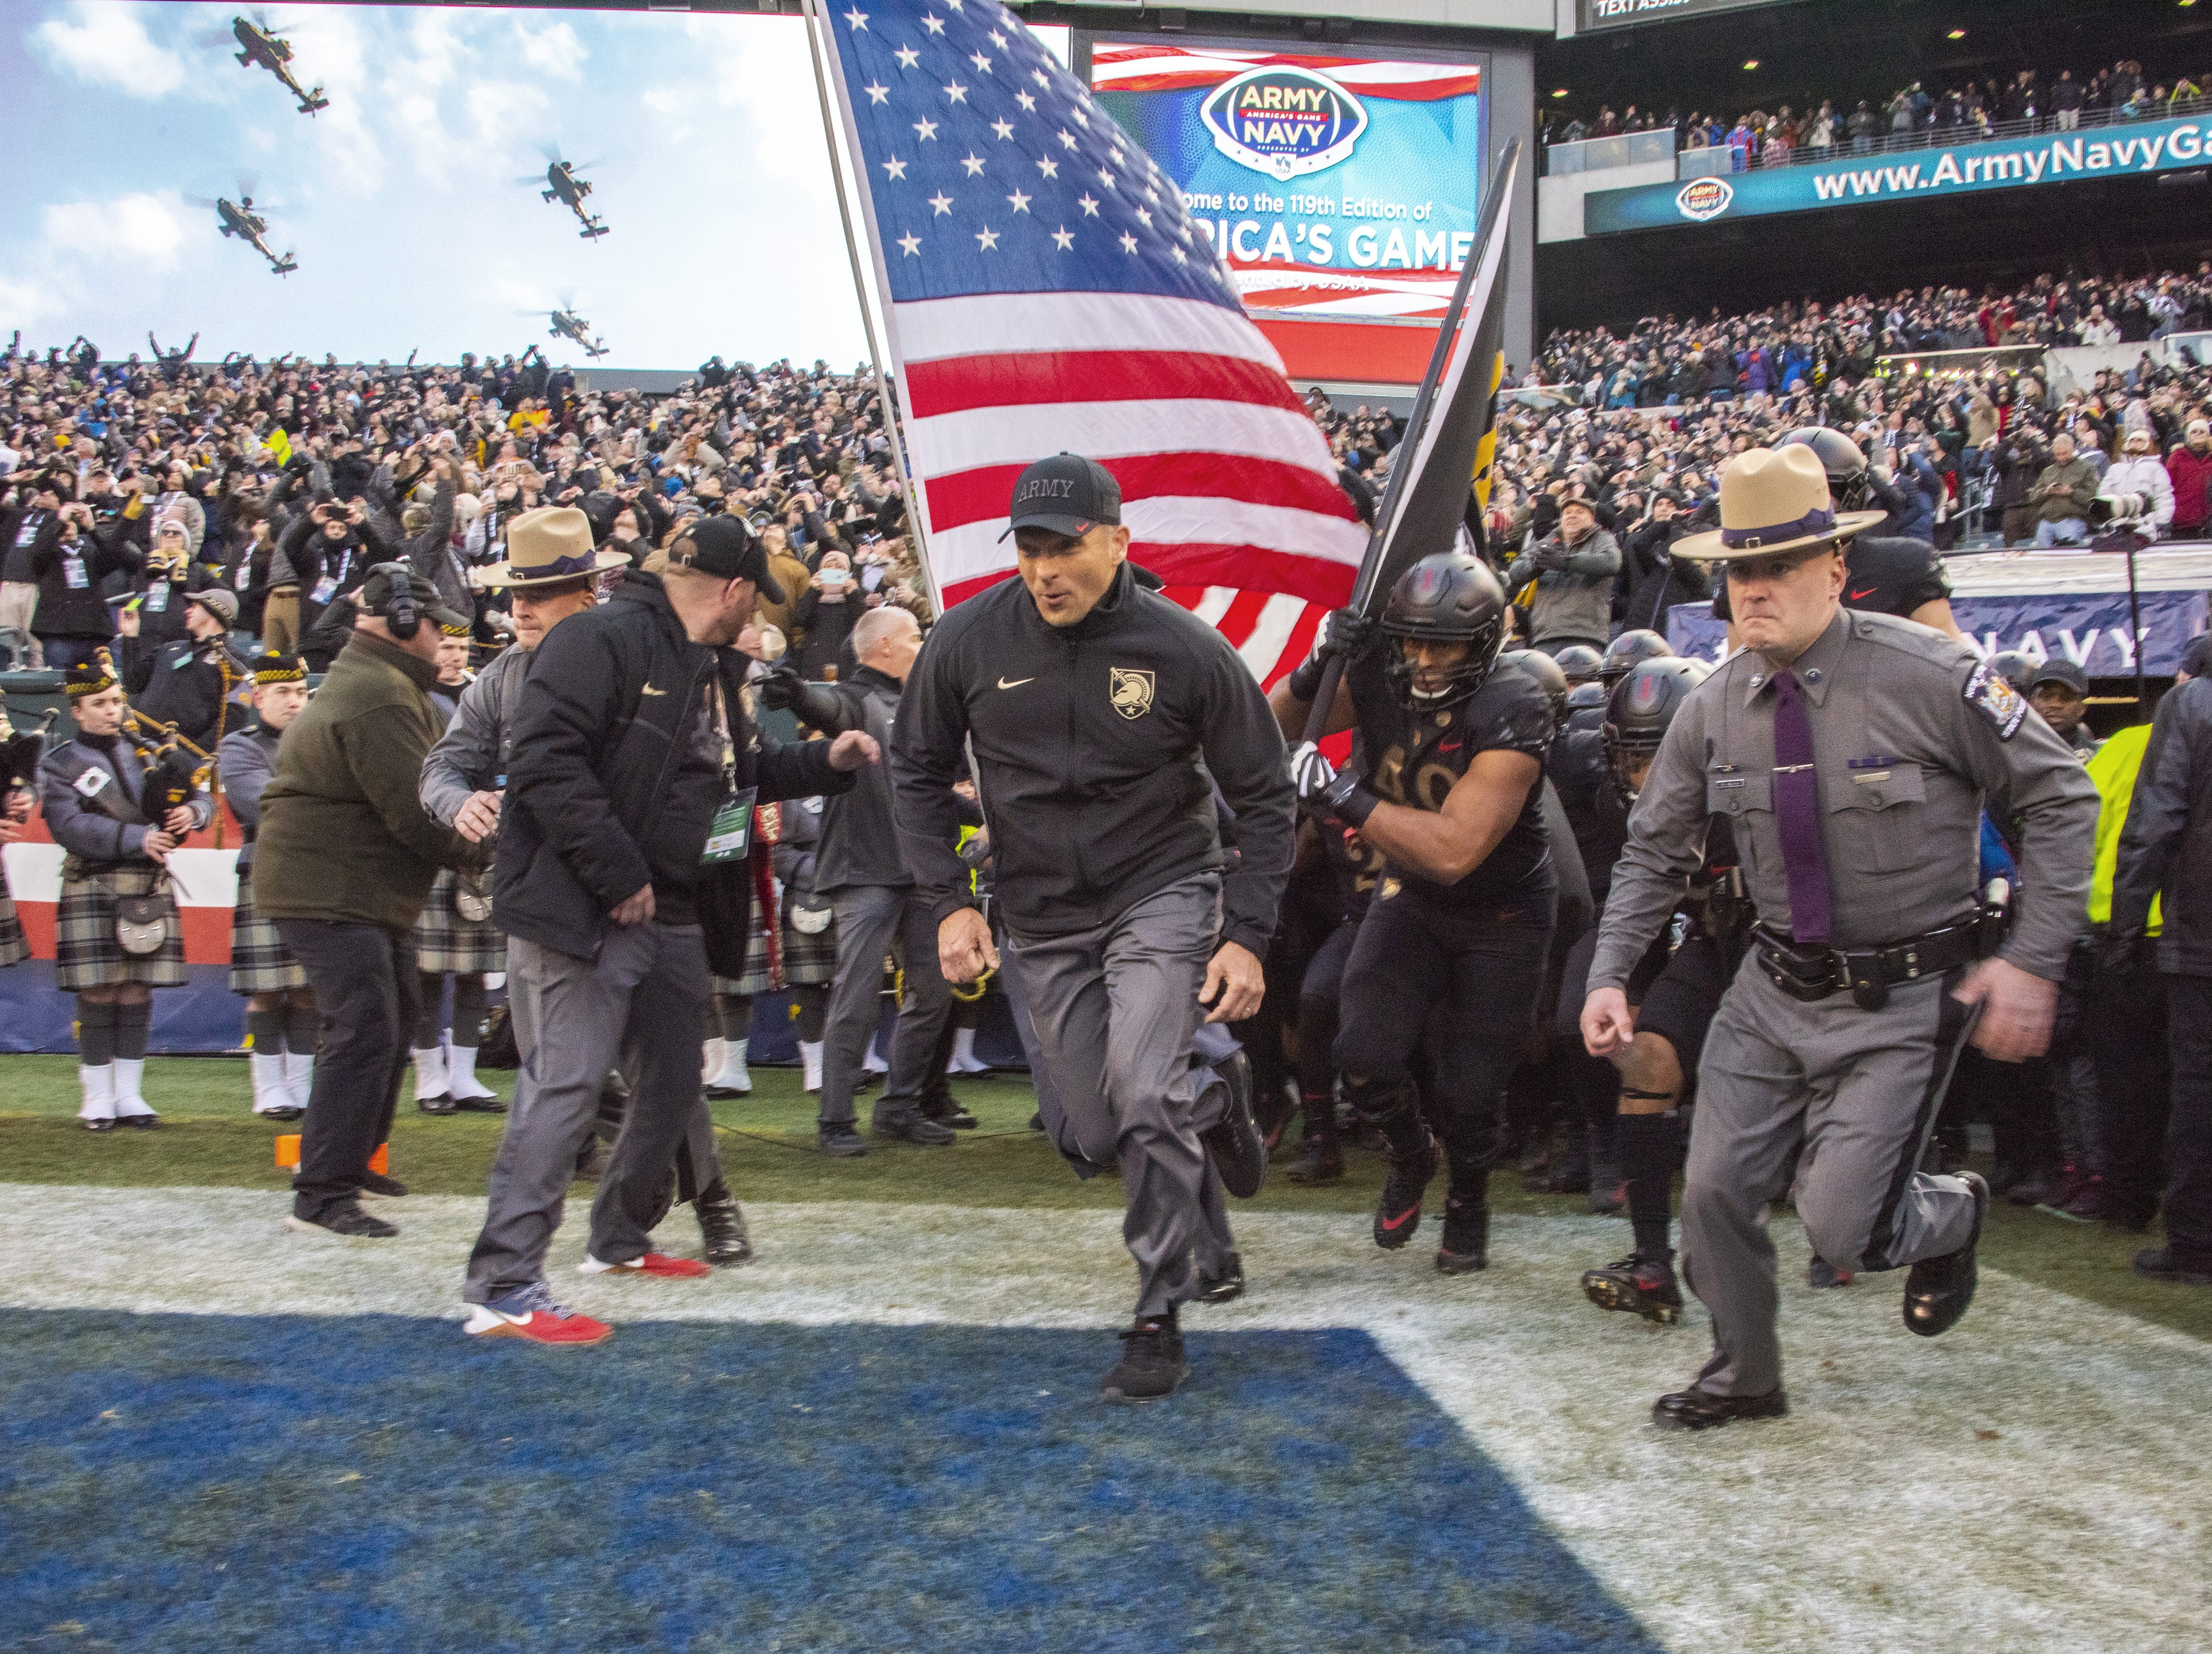 Cadets revel in annual rivalry as Army wins third straight against